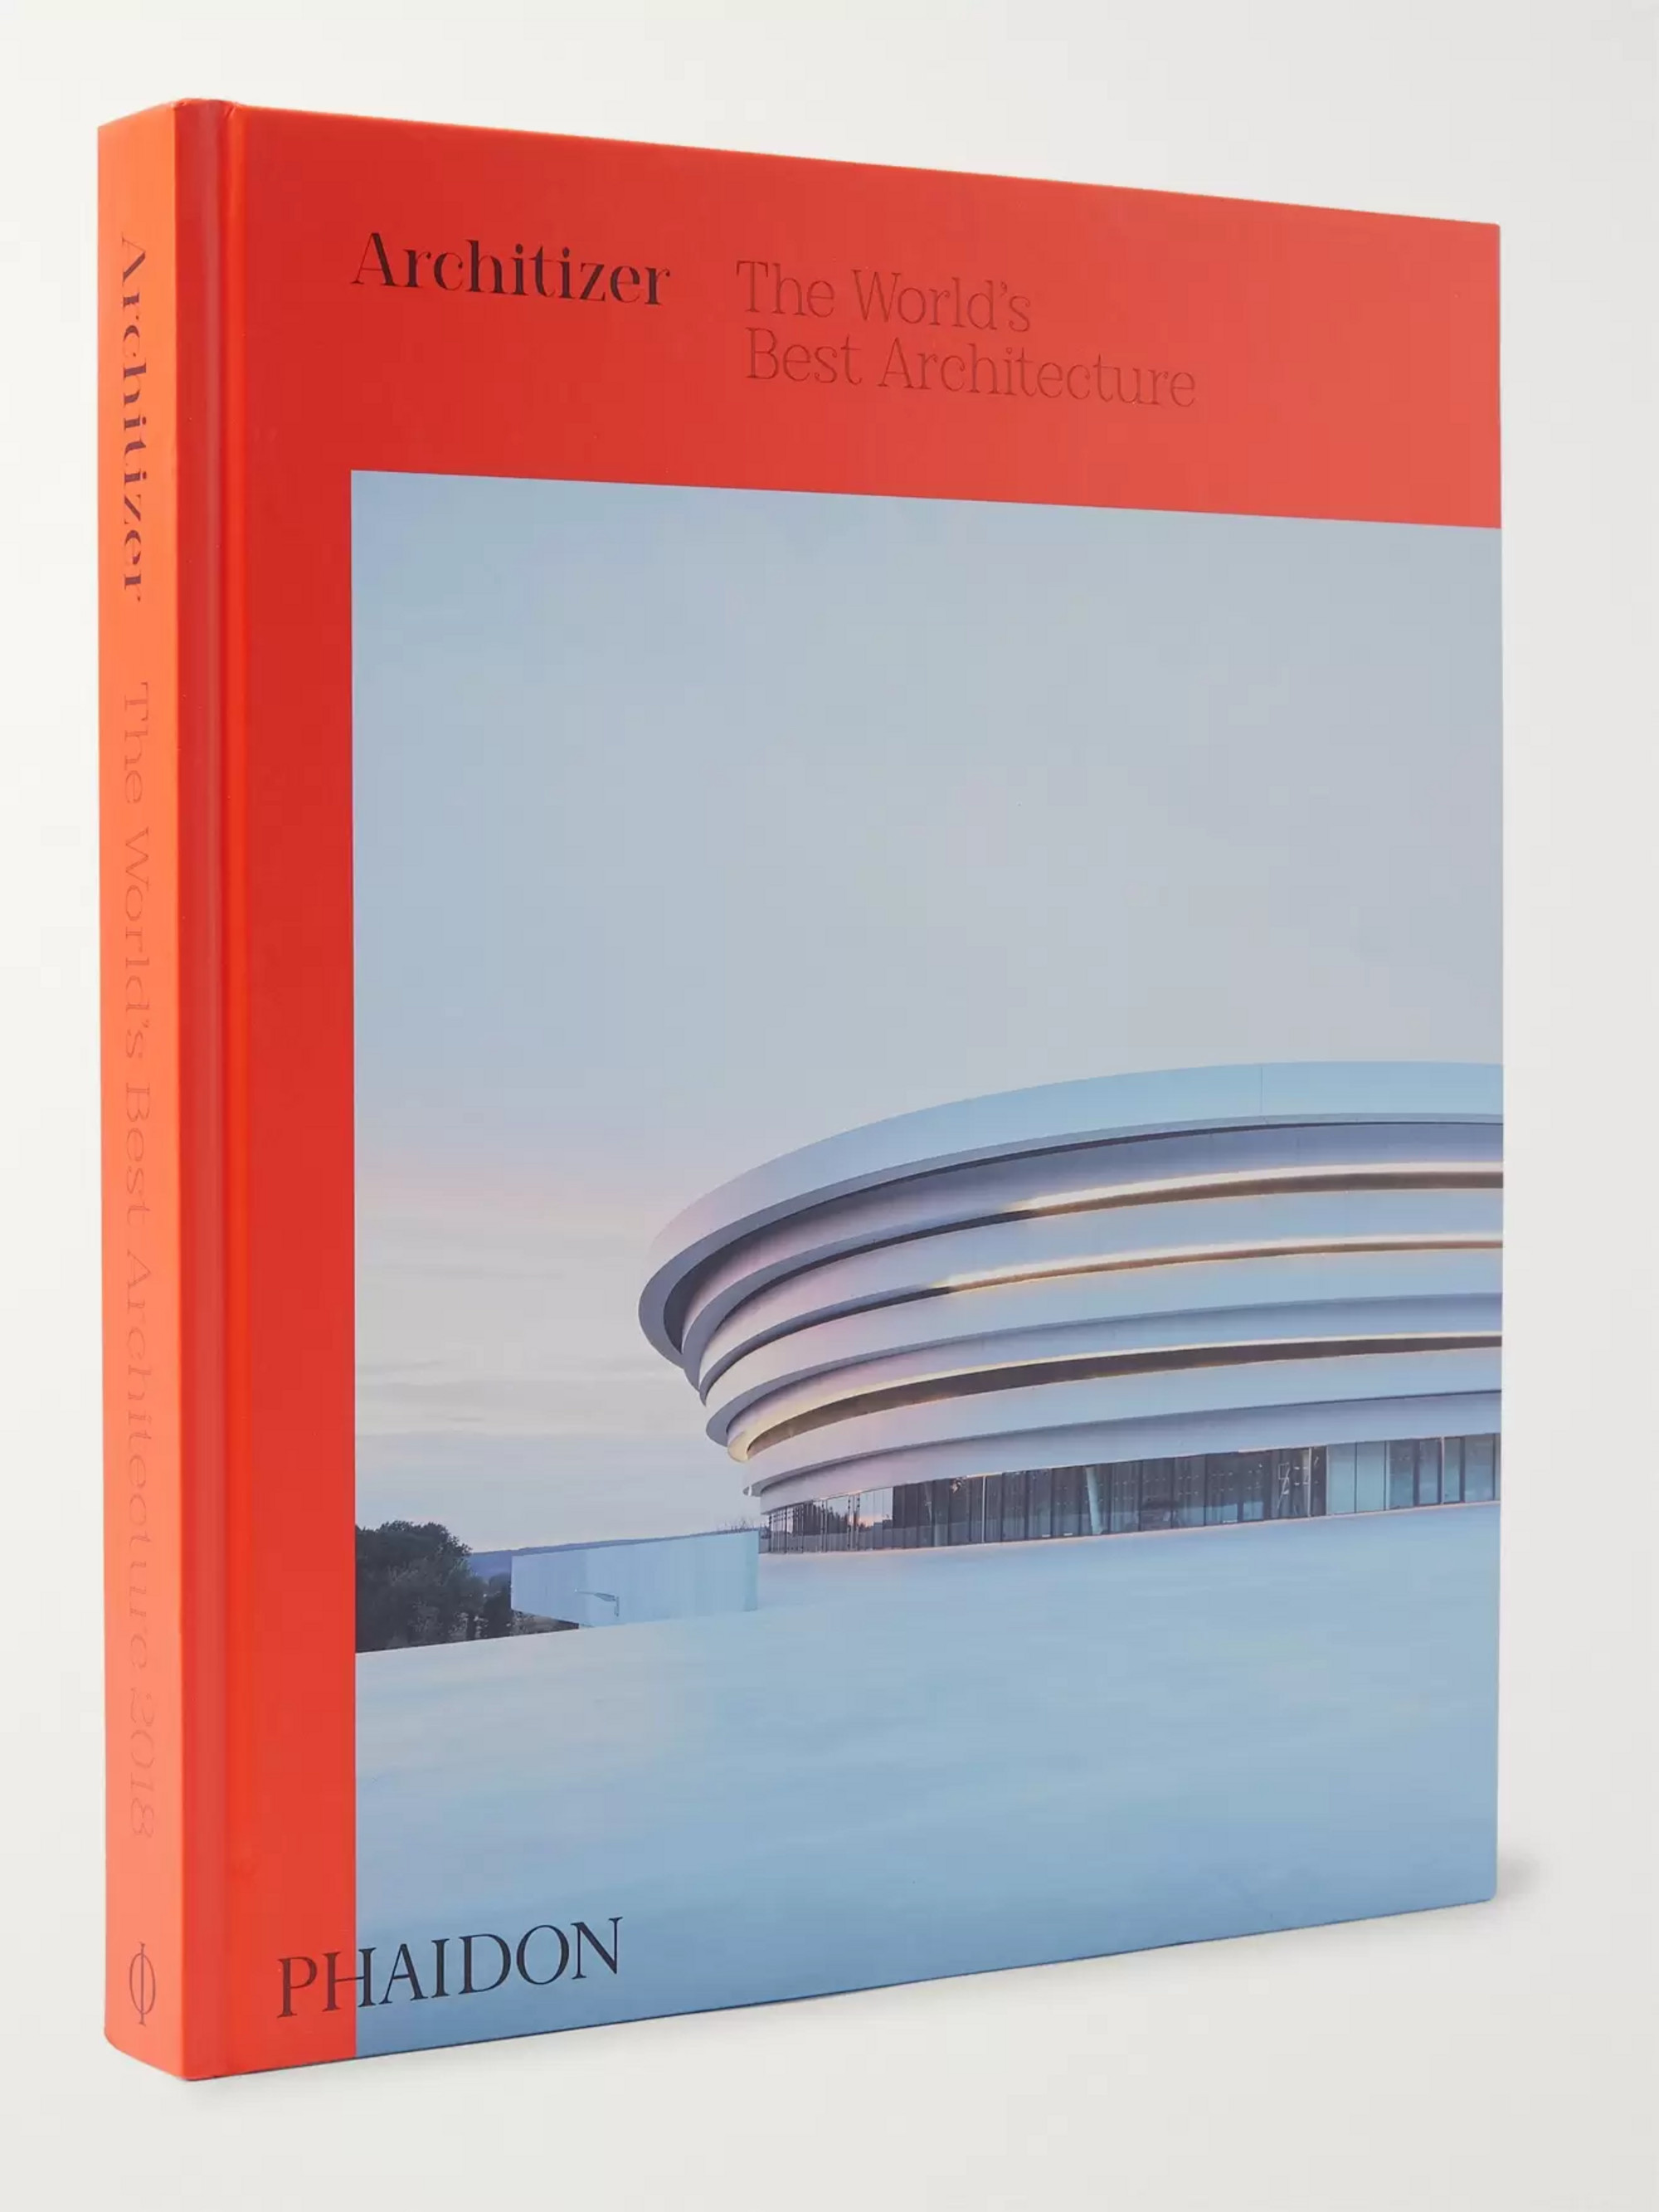 Phaidon Architizer: The World's Best Architecture Hardcover Book